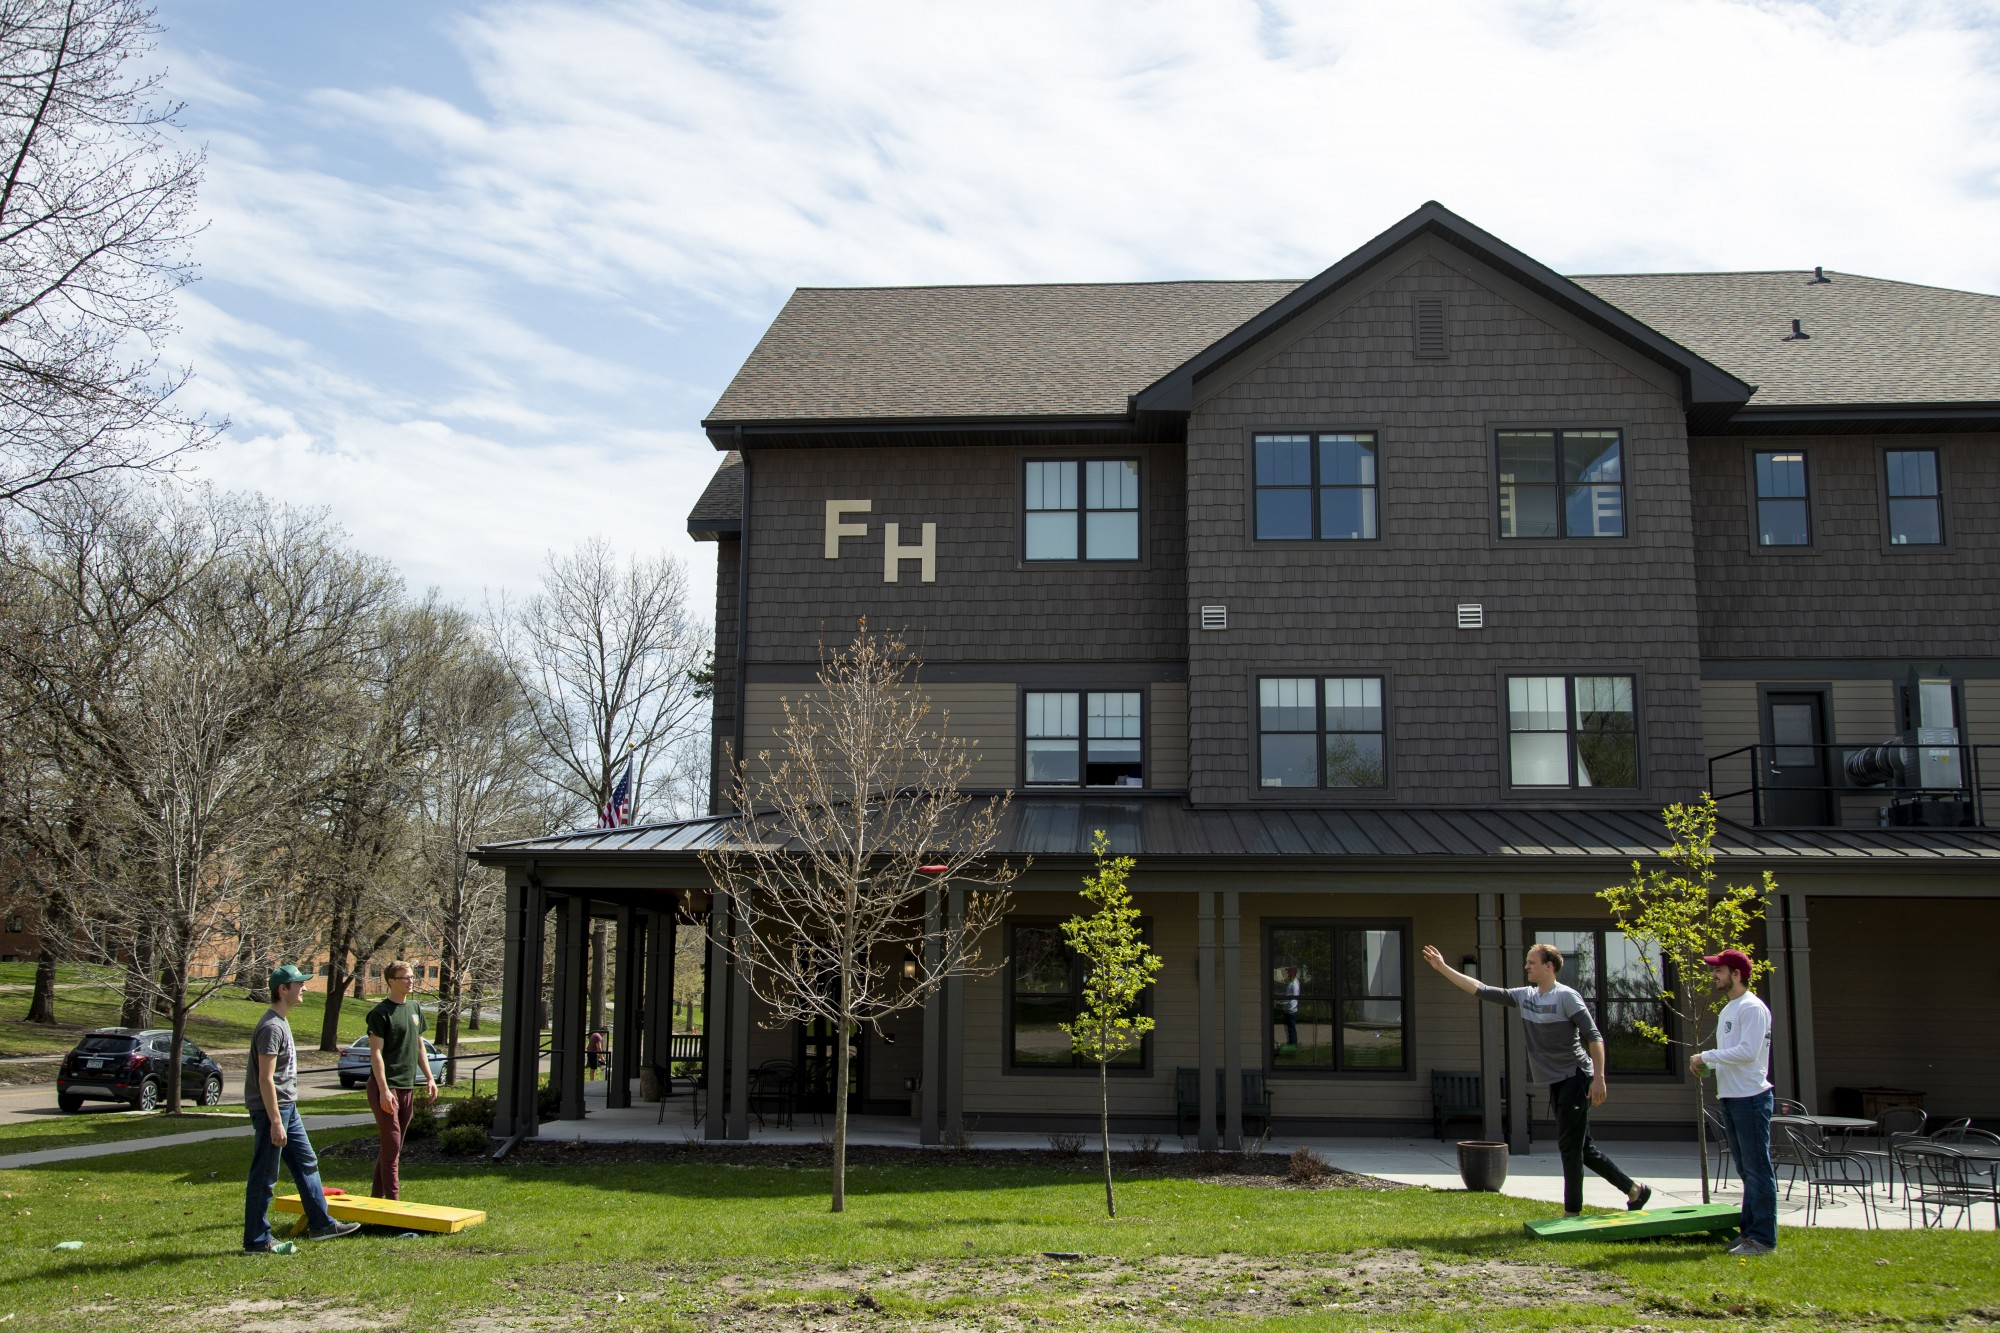 3:15 p.m. Members of the FarmHouse fraternity play a game of bags.